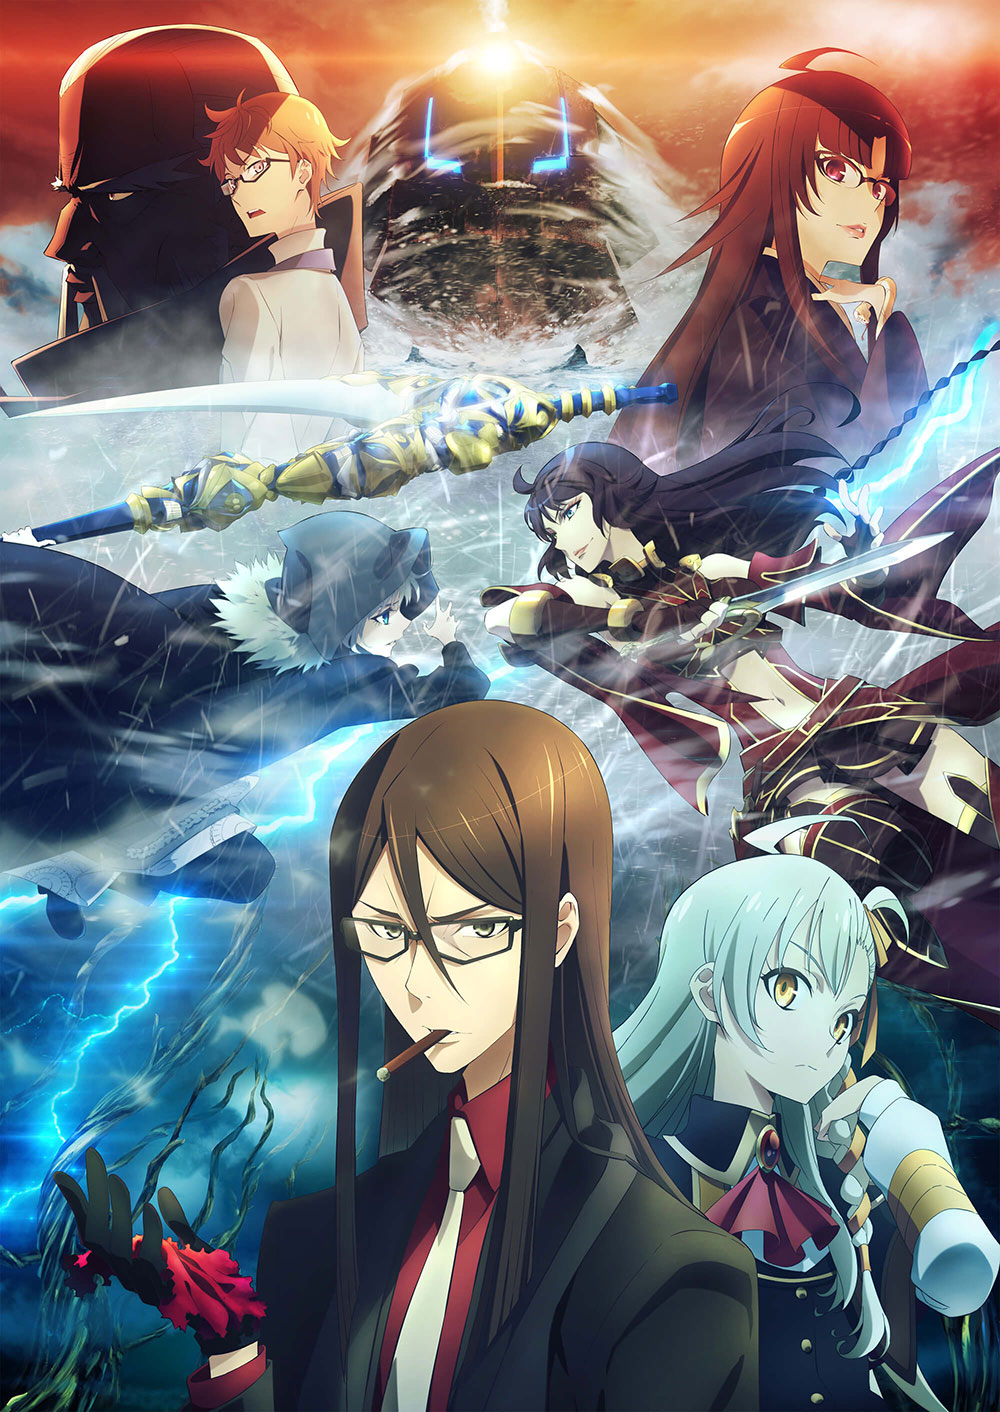 Lord-El-Melloi-II-Sei-no-Jikenbo-Rail-Zeppelin-Grace-Note-Visual